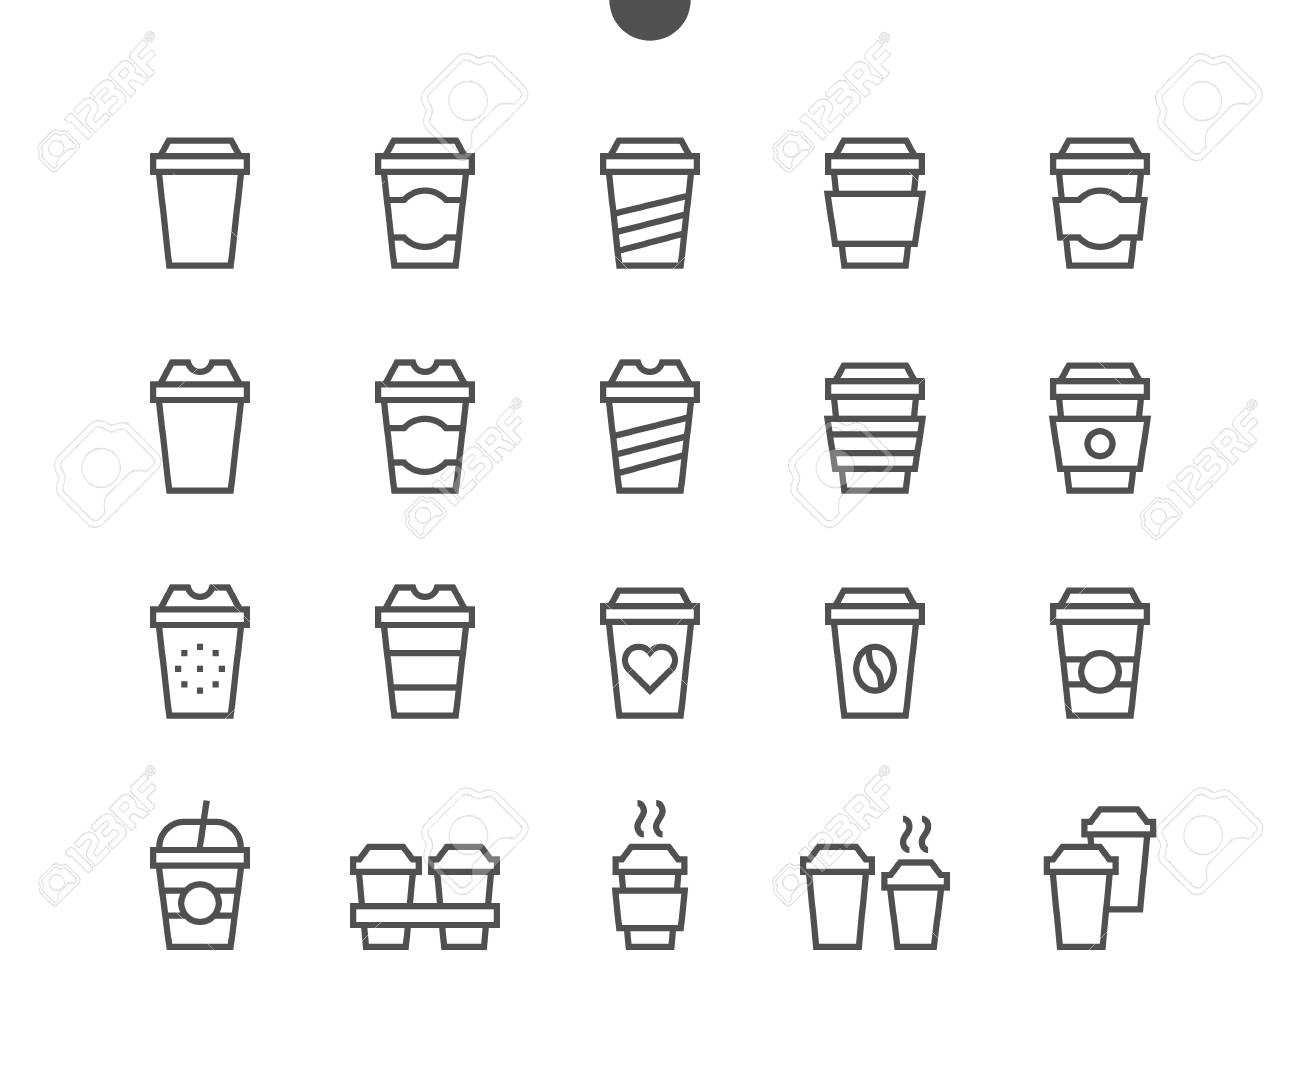 Coffee To Go Food UI Pixel Perfect Well-crafted Vector Thin Line Icons 48x48 Ready for 24x24 Grid for Web Graphics and Apps with Editable Stroke. Simple Minimal Pictogram Part 1-1 - 96207189